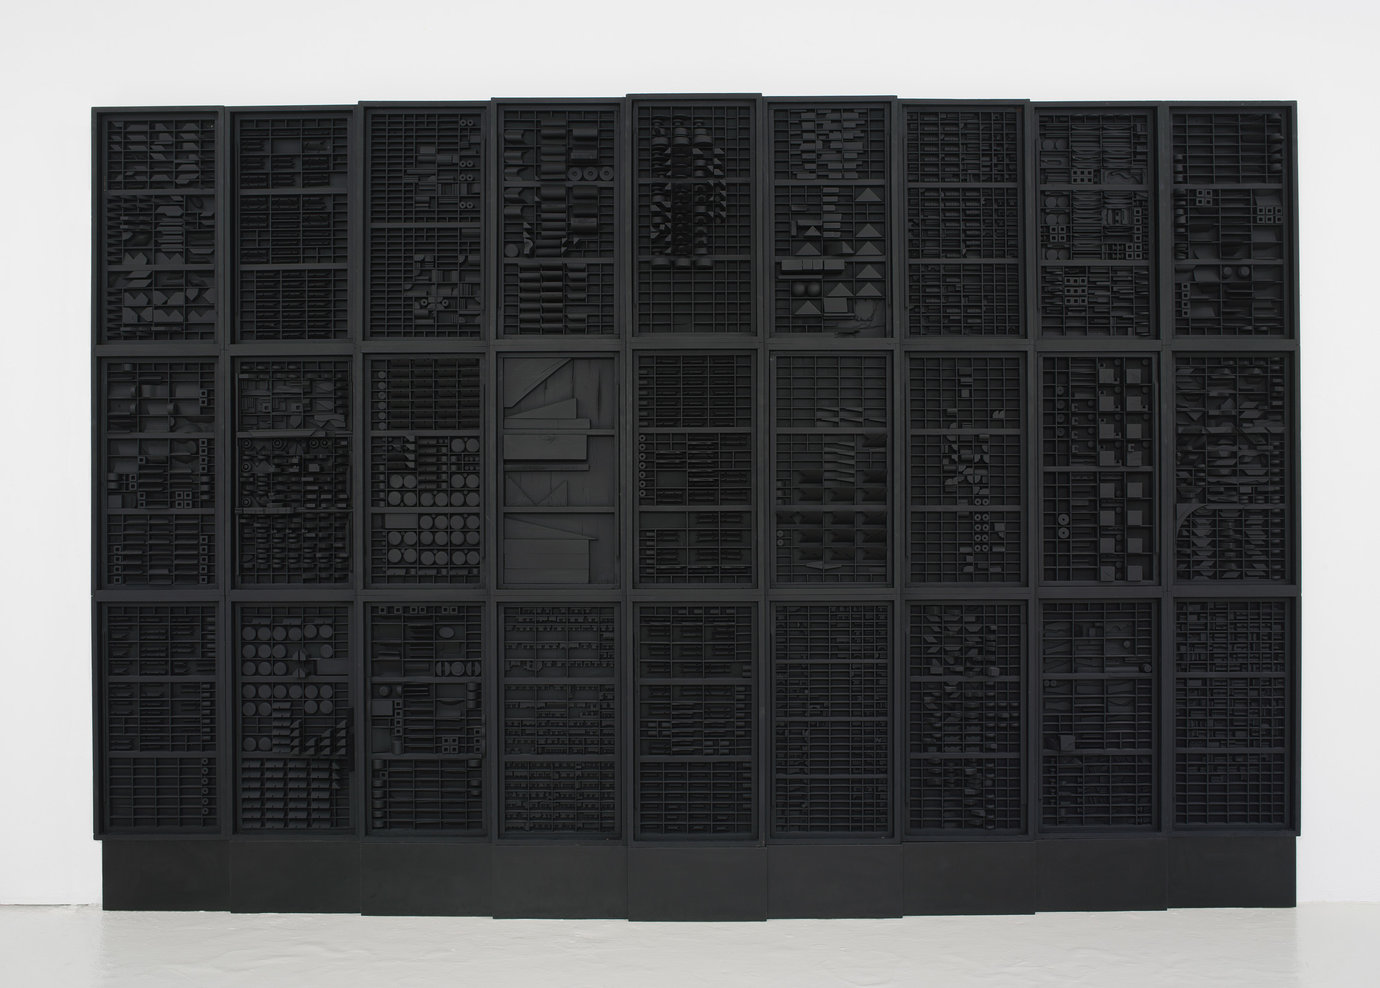 ", 1973. wood painted black, 8' 5-1/4"" x 13' 10"" x 6"" (257.2 cm x 421.6 cm x 15.2 cm), 9 elements plus 2 part base, 11 parts total."